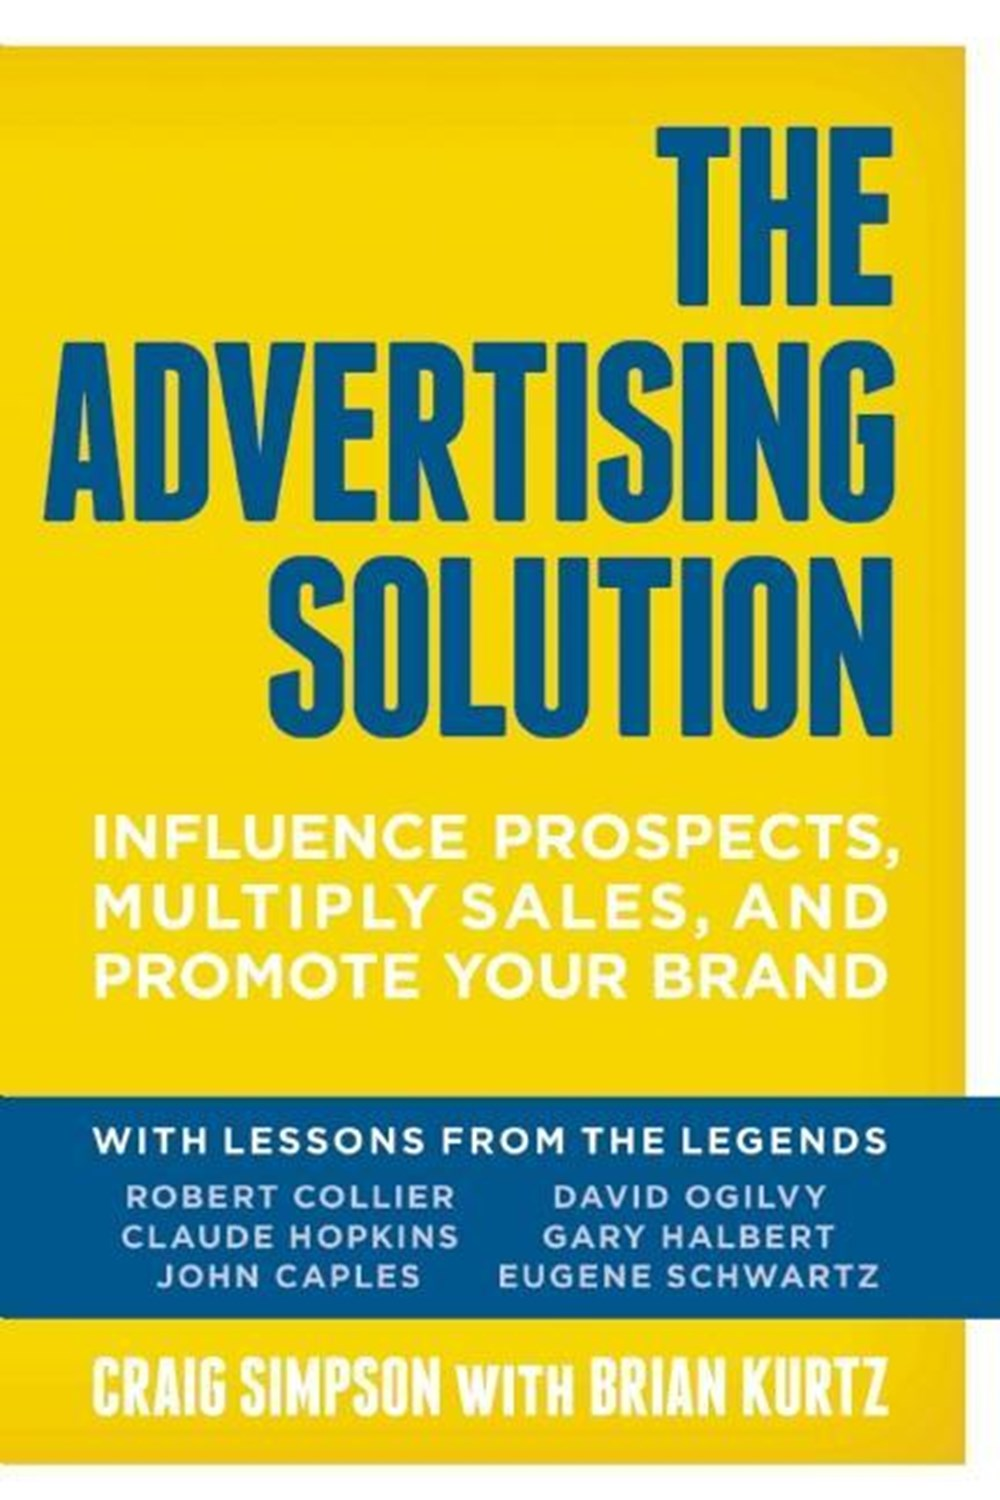 Advertising Solution: Influence Prospects, Multiply Sales, and Promote Your Brand